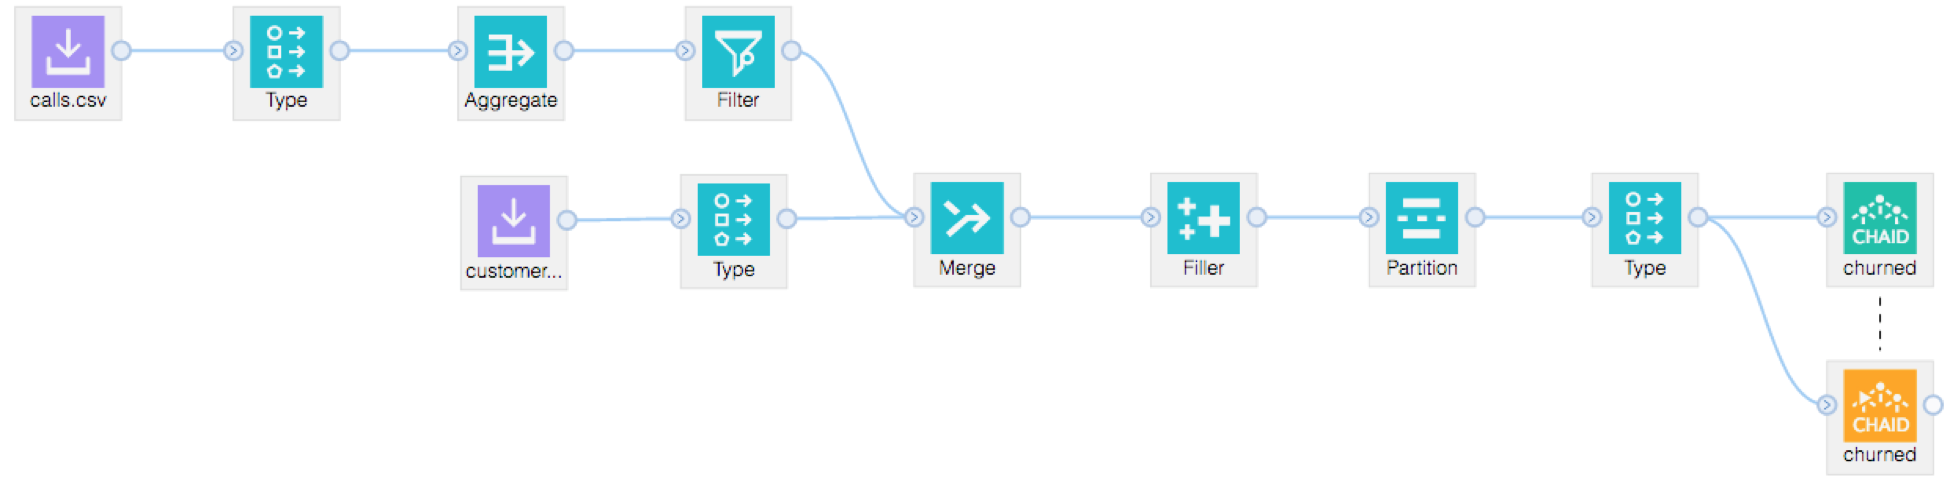 Predict Customer Churn by Building and Deploying Models